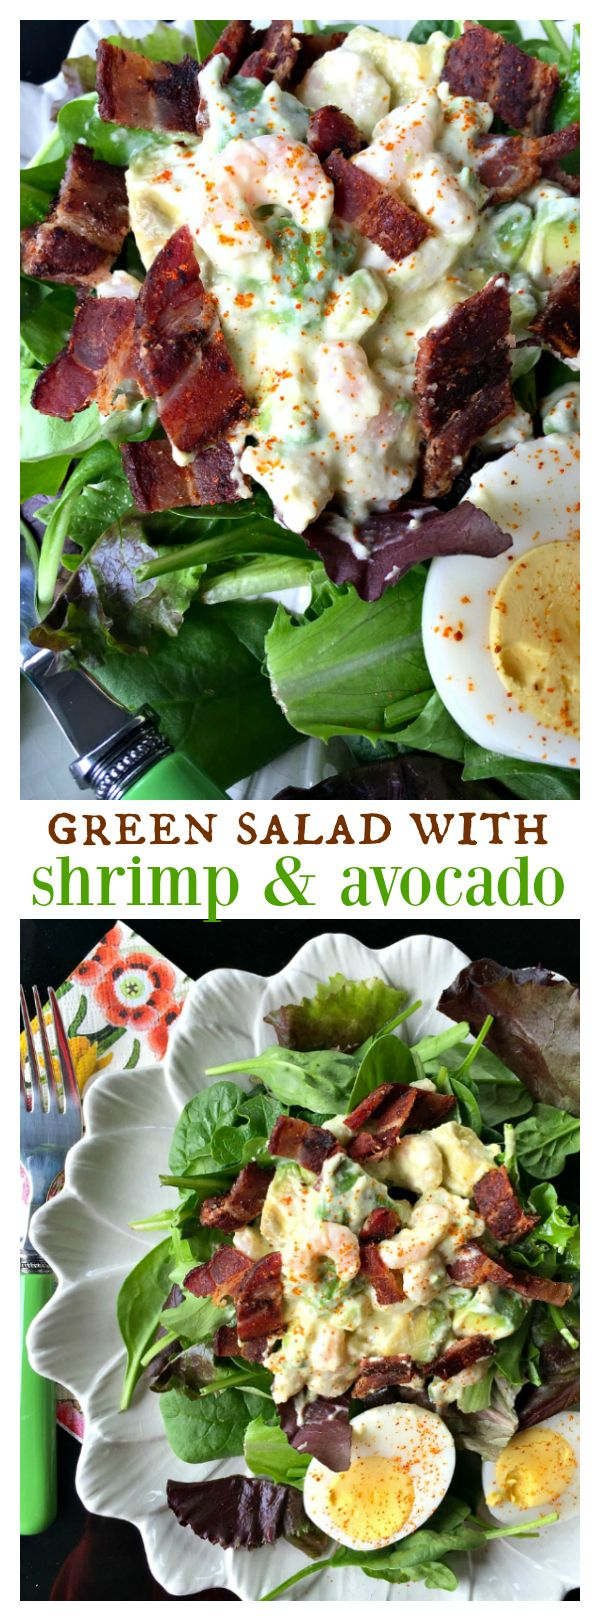 Green Salad with Shrimp and Avocado for Easter or springtime entertaining; make the dressing ahead of time!